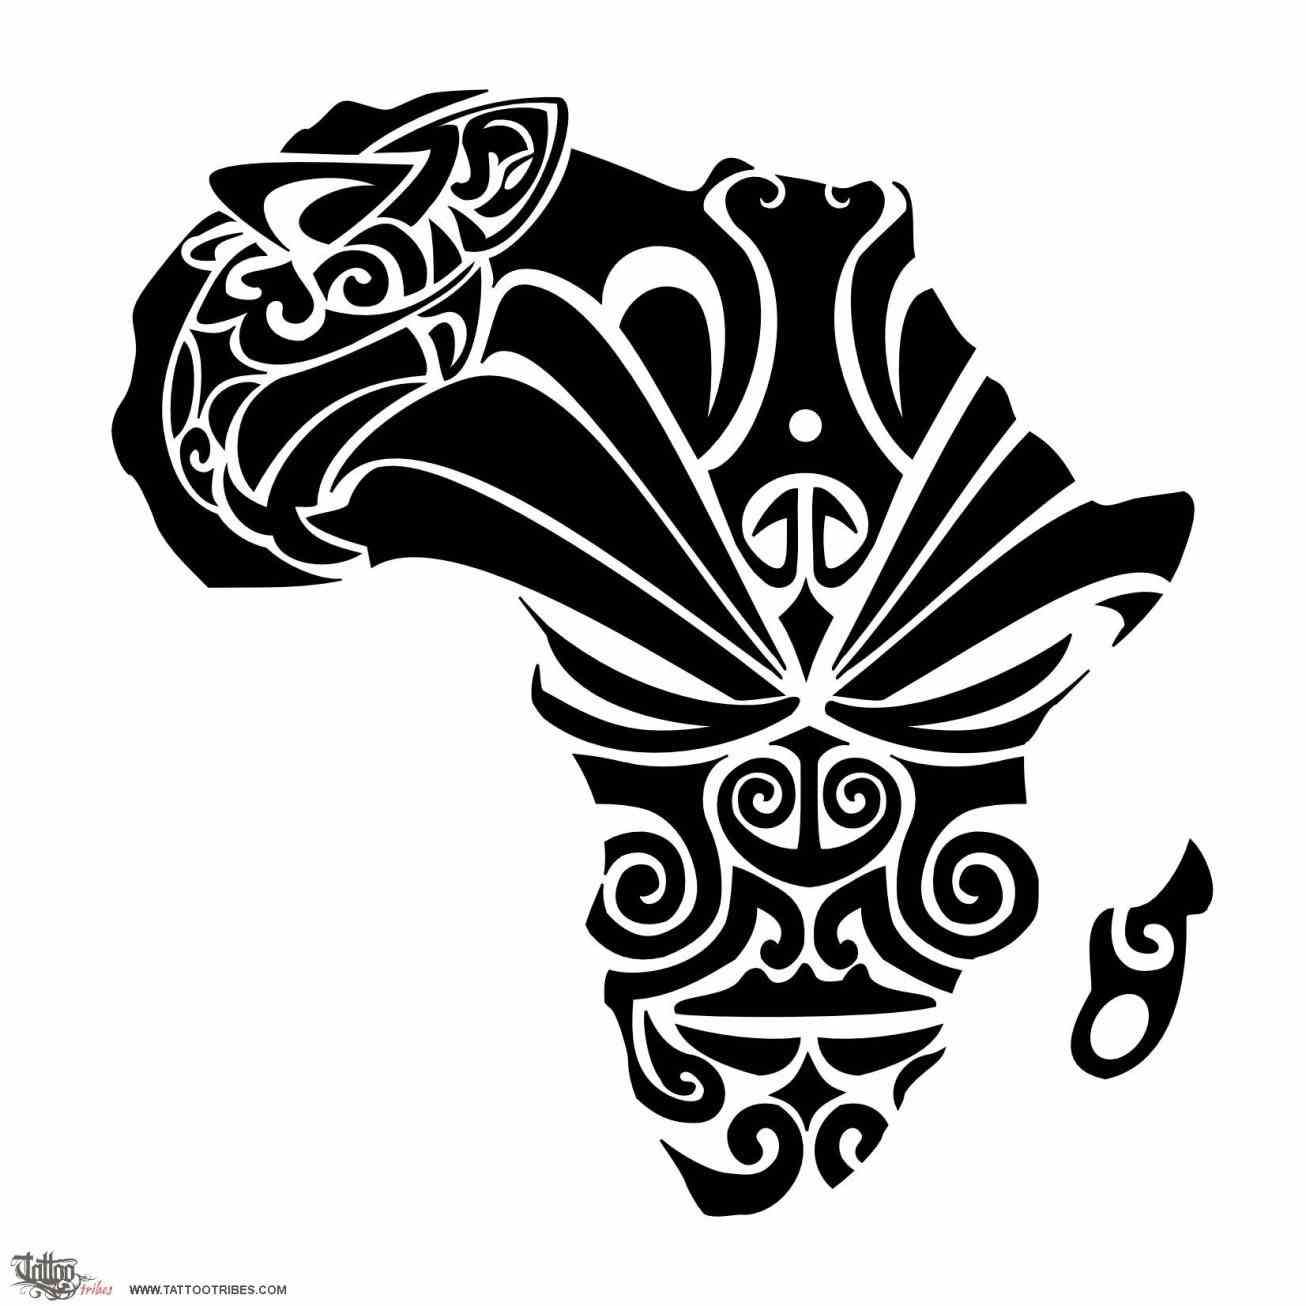 Of Tribal Labrys Warrior Custom Designs On African Dream Courage